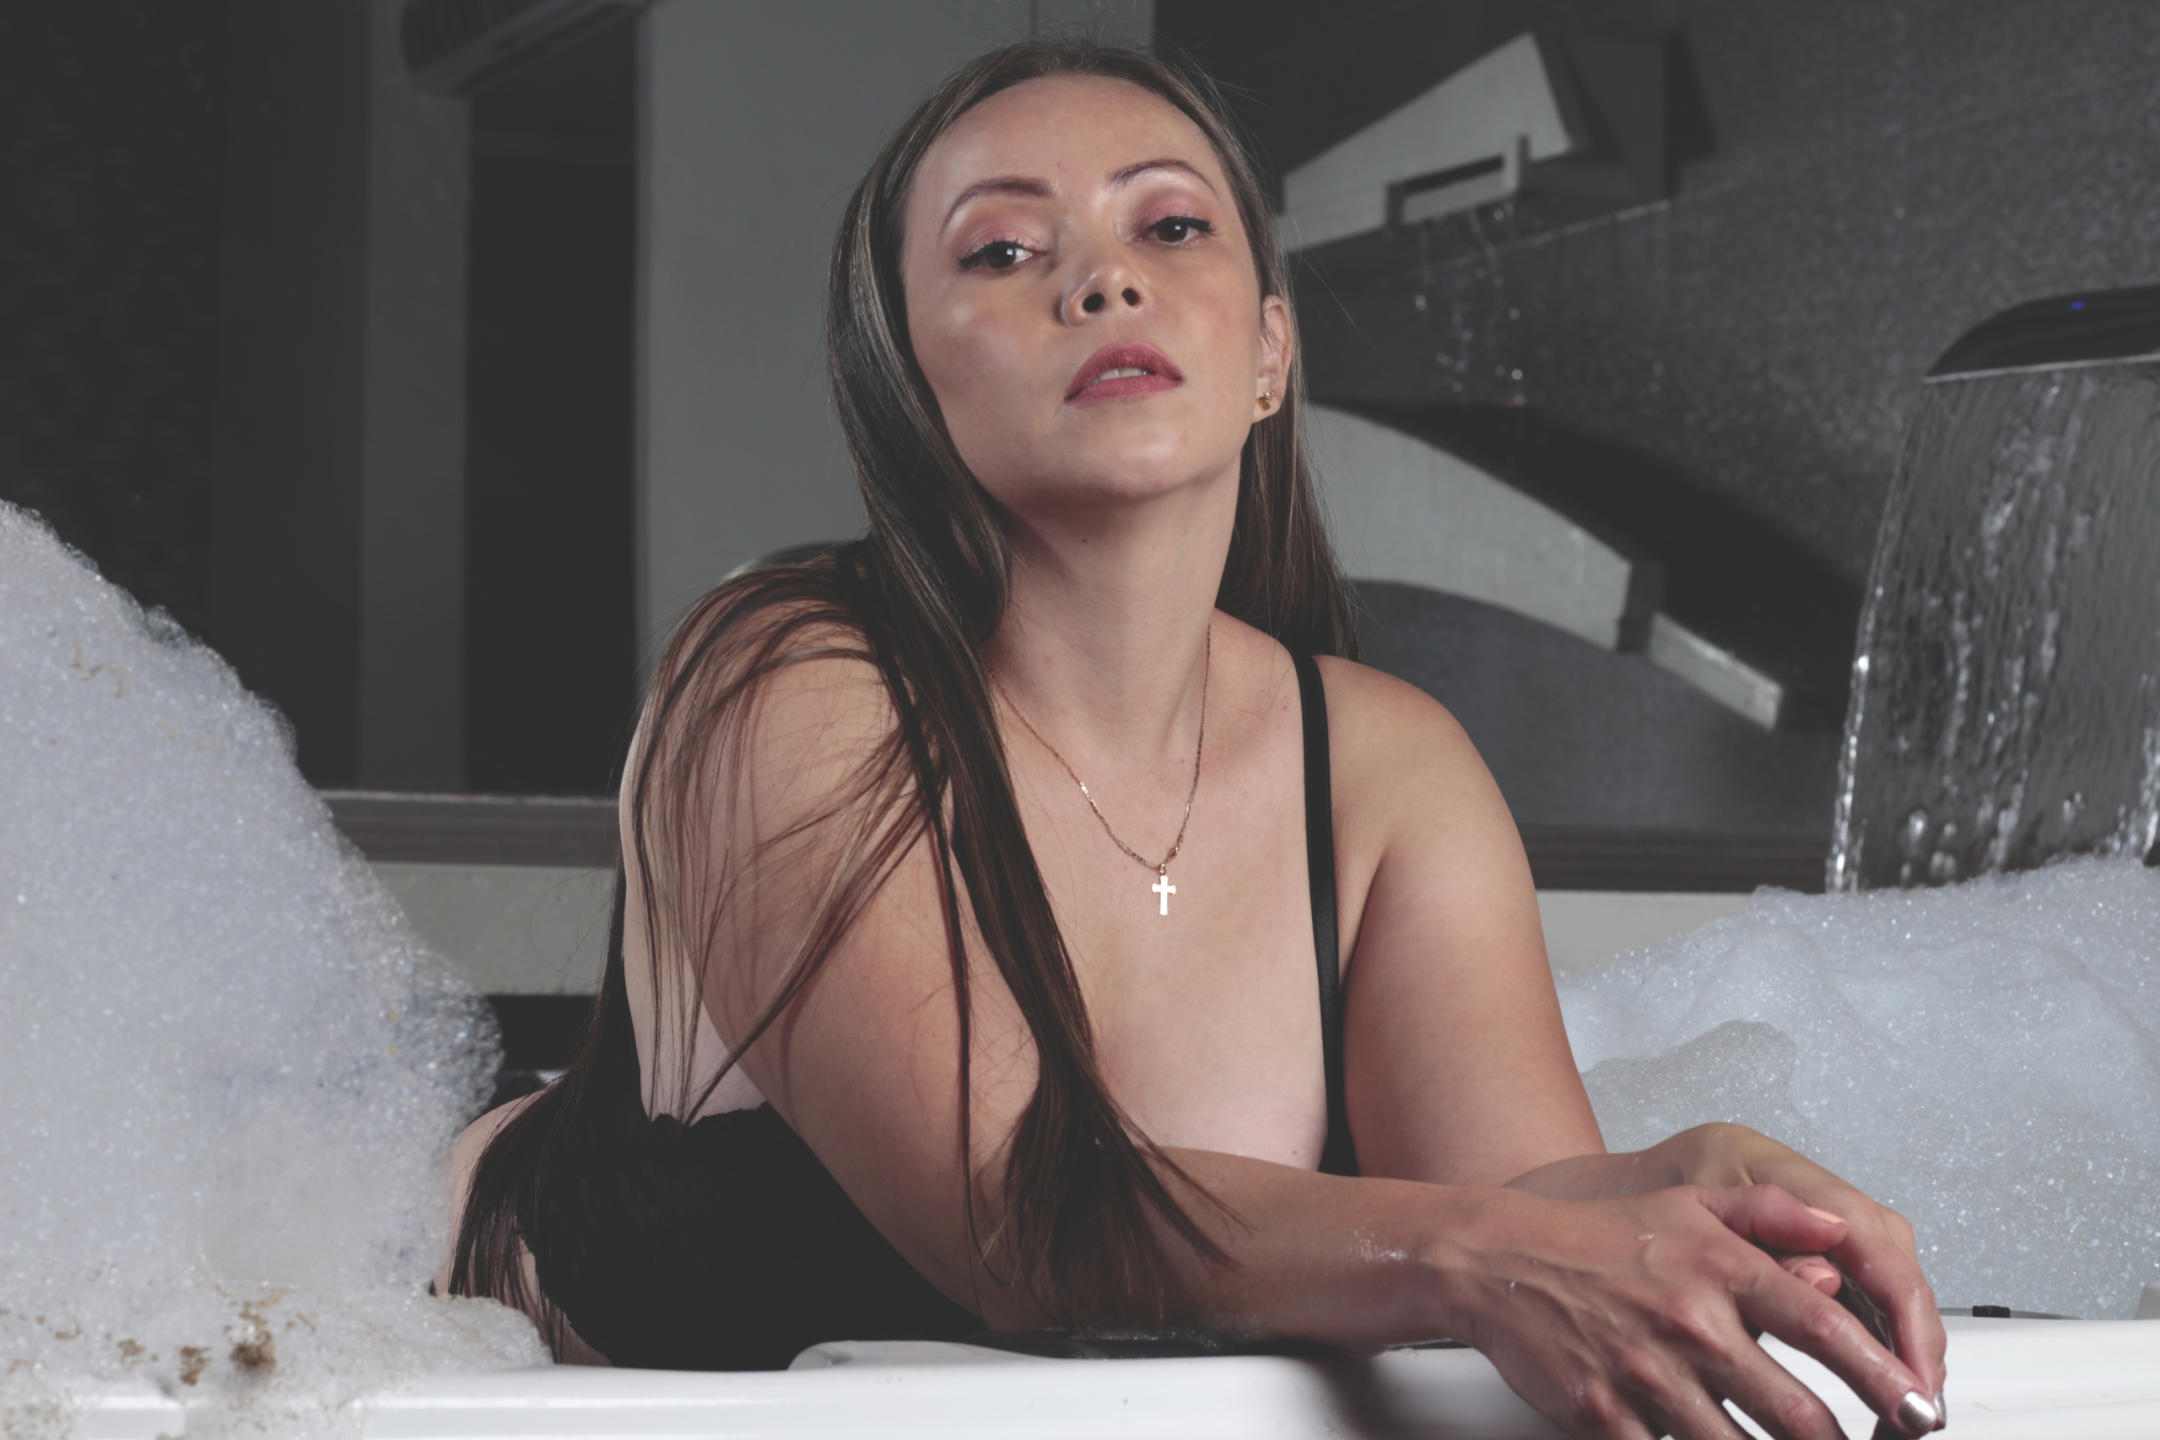 Amusing chatonline video girls sexy in apologise